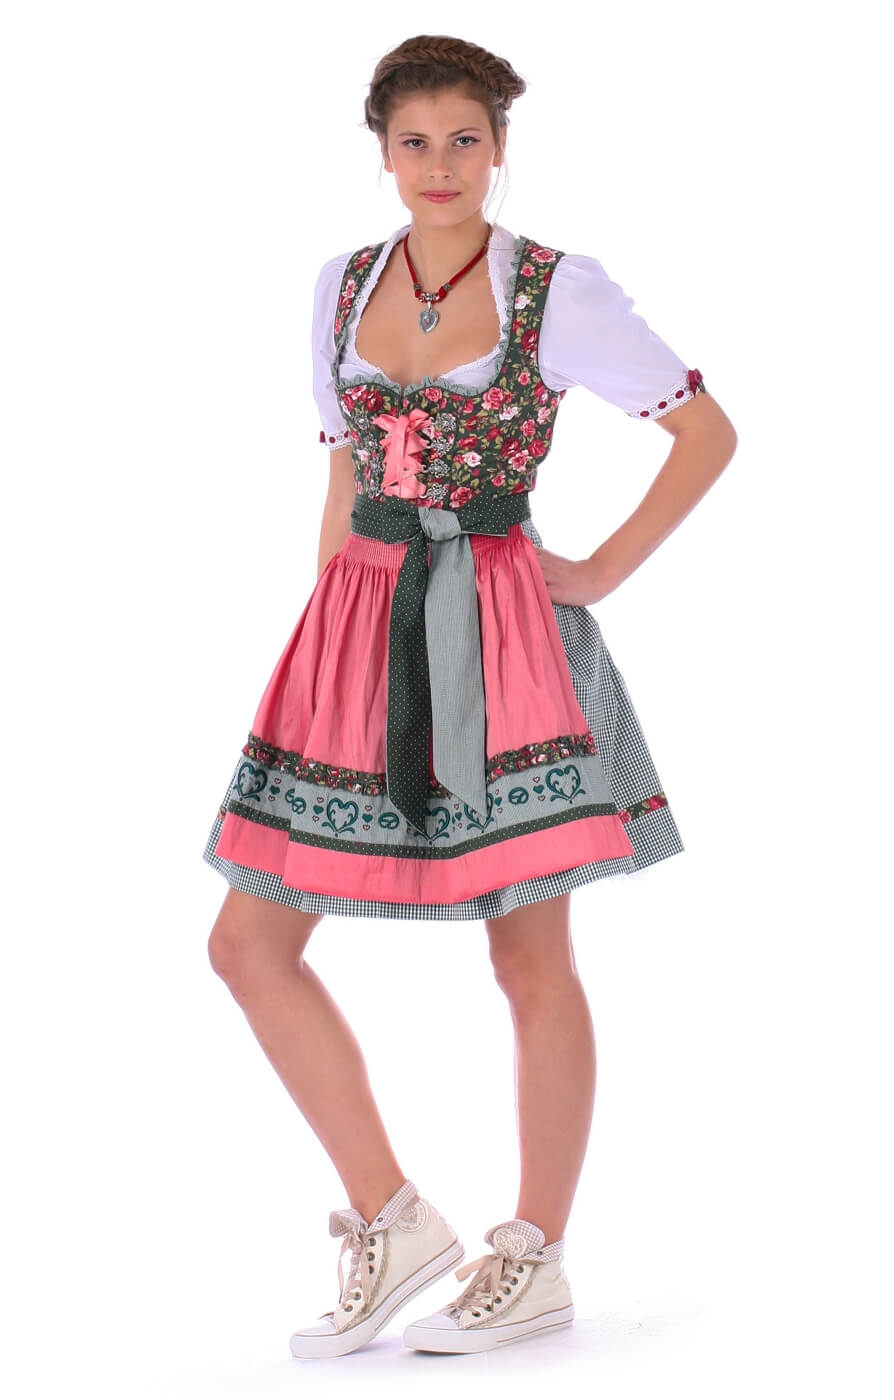 bavarian styles for hot summer days oktoberfest dirndl blog oktoberfest dirndl blog. Black Bedroom Furniture Sets. Home Design Ideas